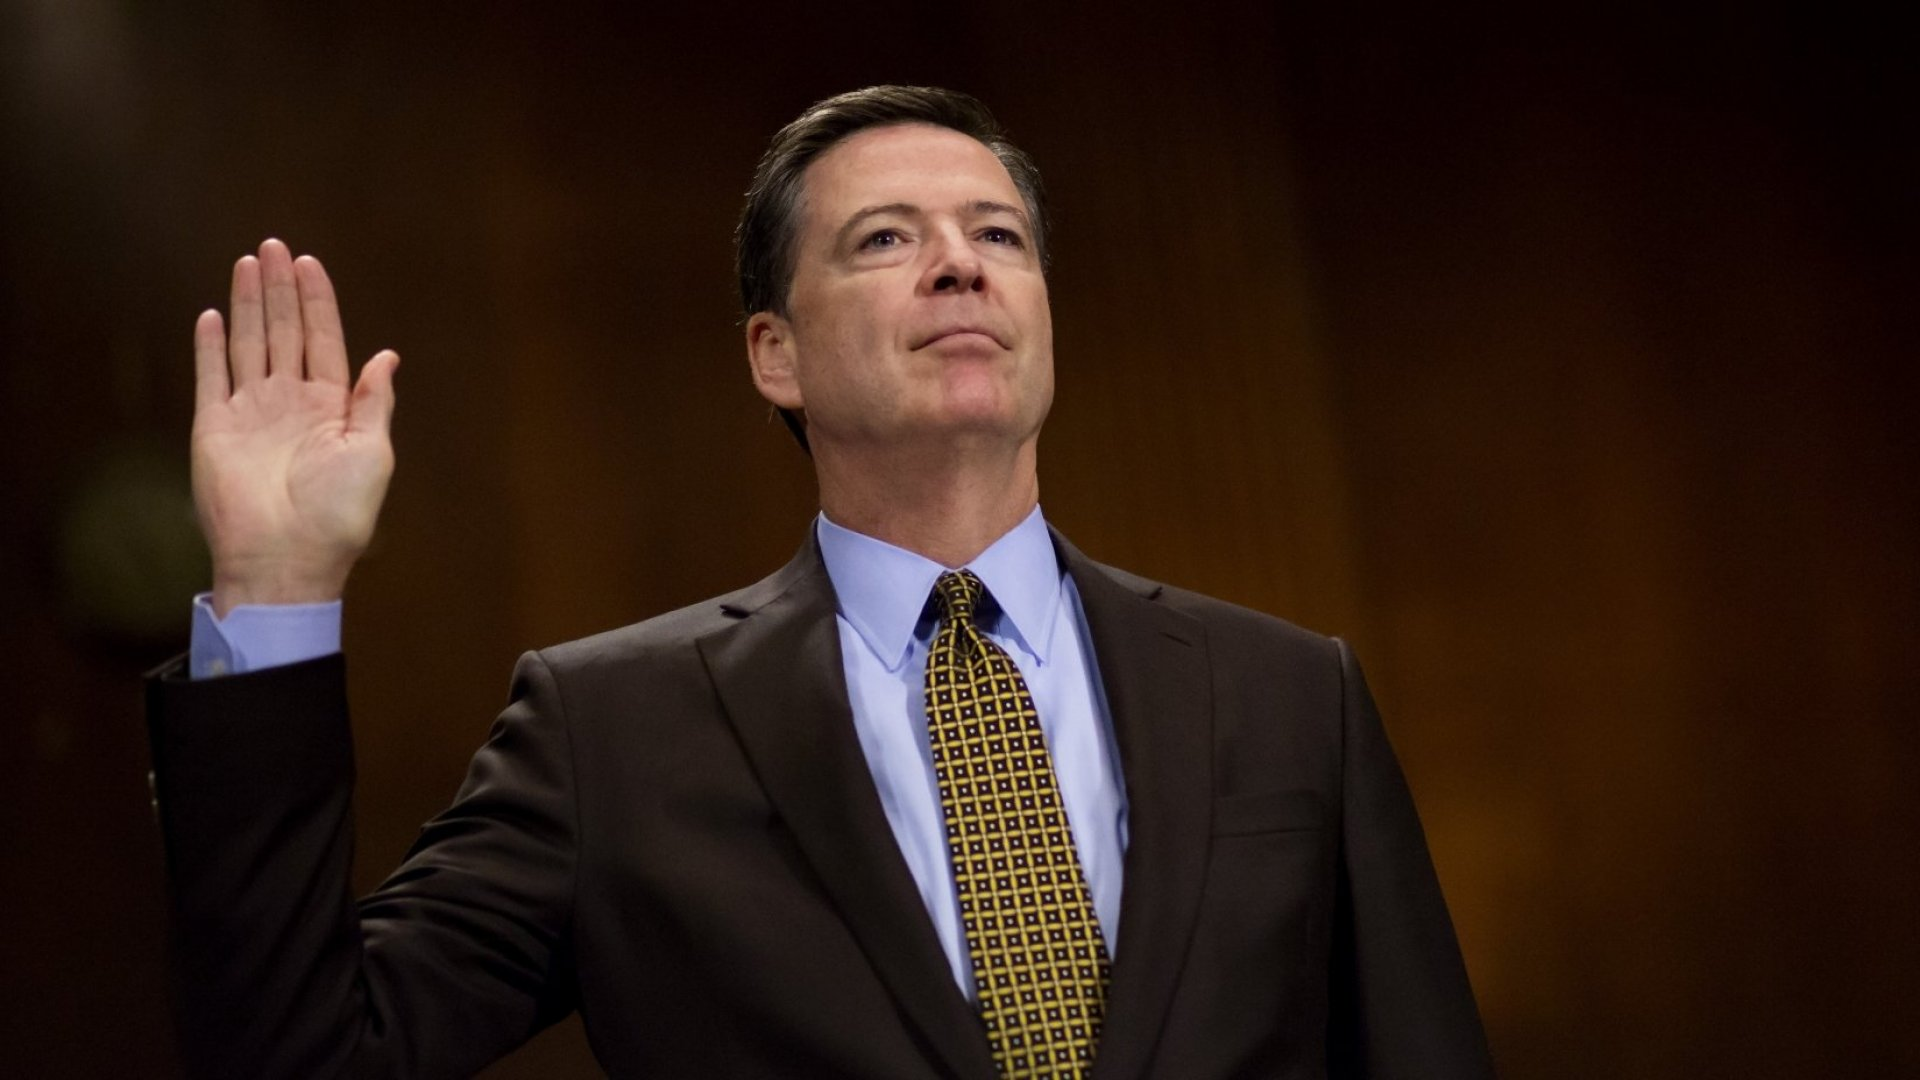 James Comey, former director of the Federal Bureau of Investigation, testifies before the Senate Judiciary Committee during an oversight hearing on the FBI on Capitol Hill on May 3, 2017.